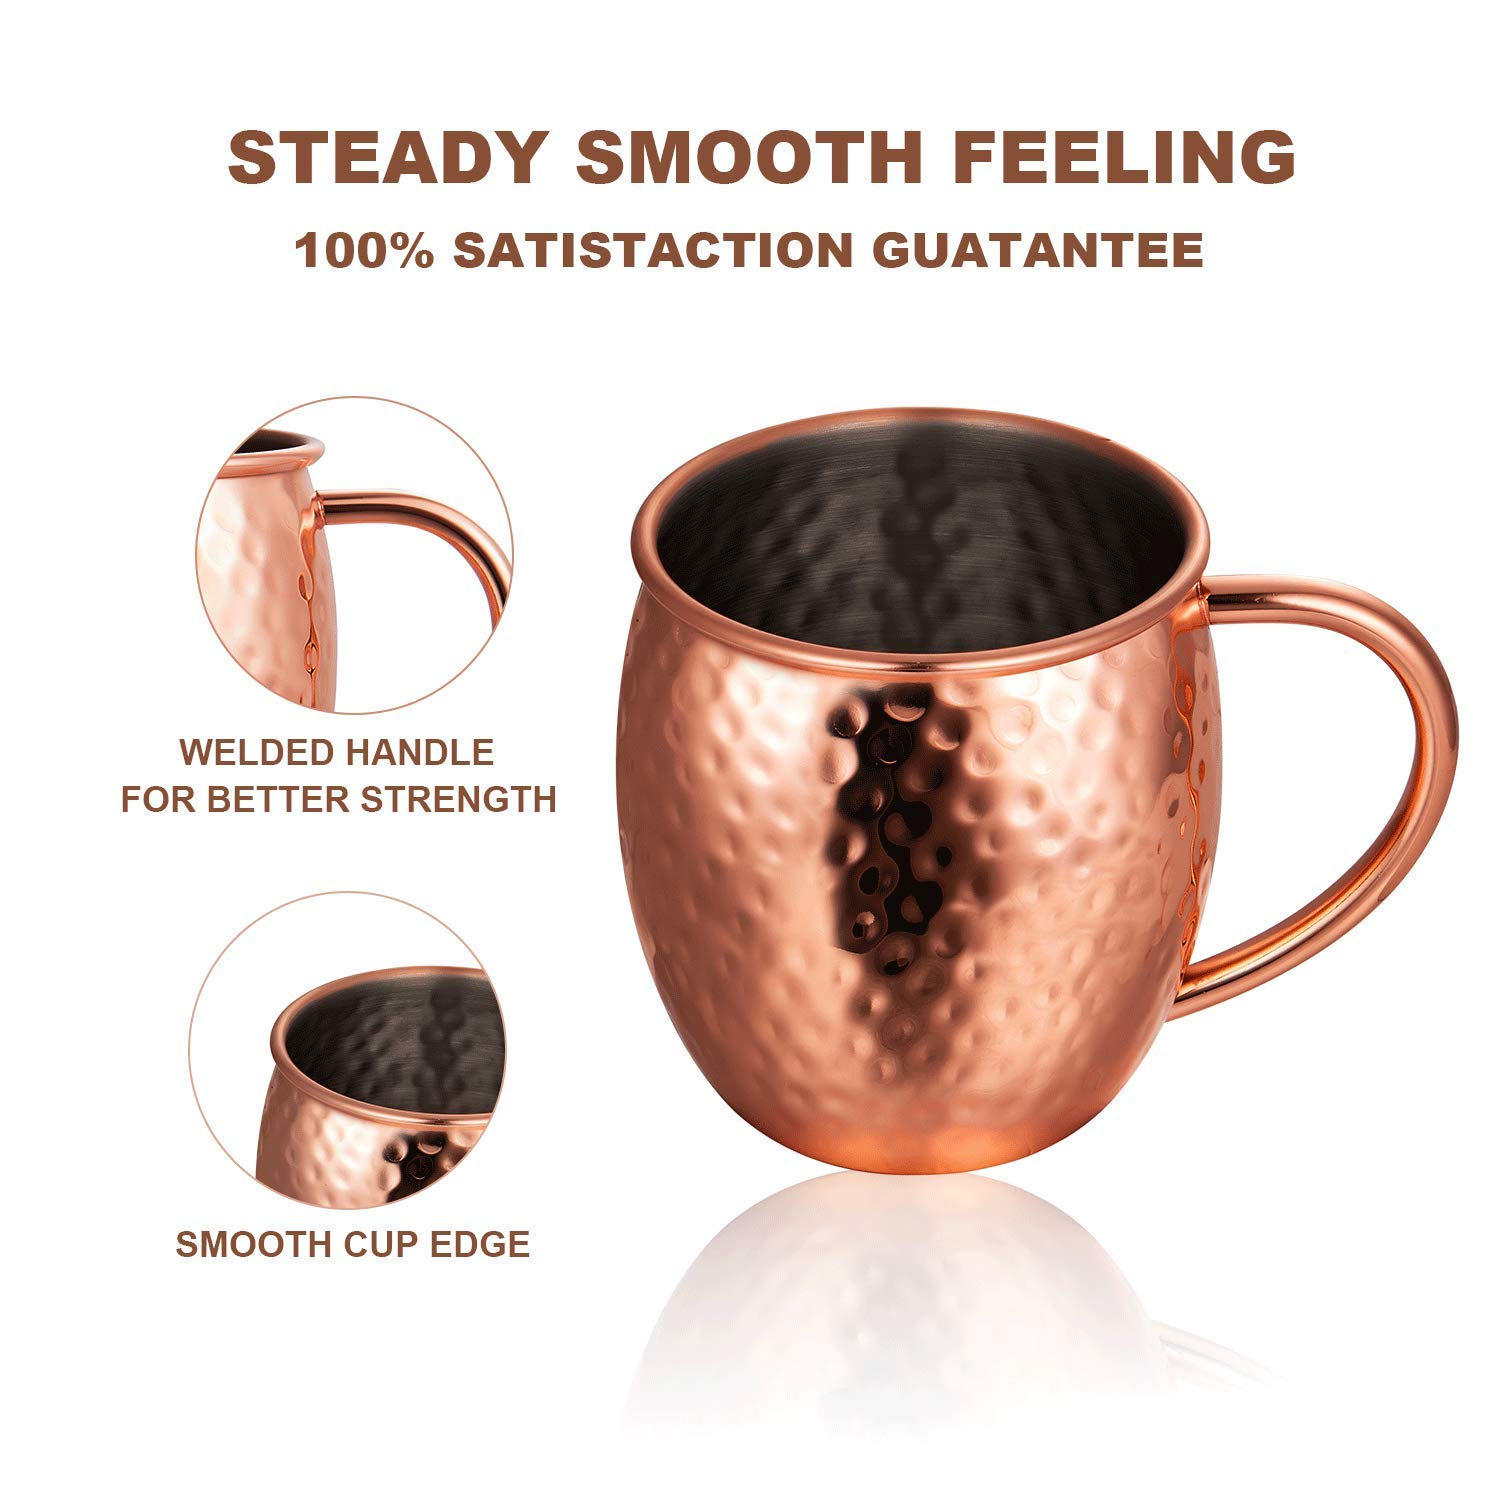 Deik Moscow Mule Copper Mugs, 100% Handcrafted Copper Mugs with Brass Handle, 16 Ounce Moscow Mule Mugs, Copper Cups, Mugs Sets of 4